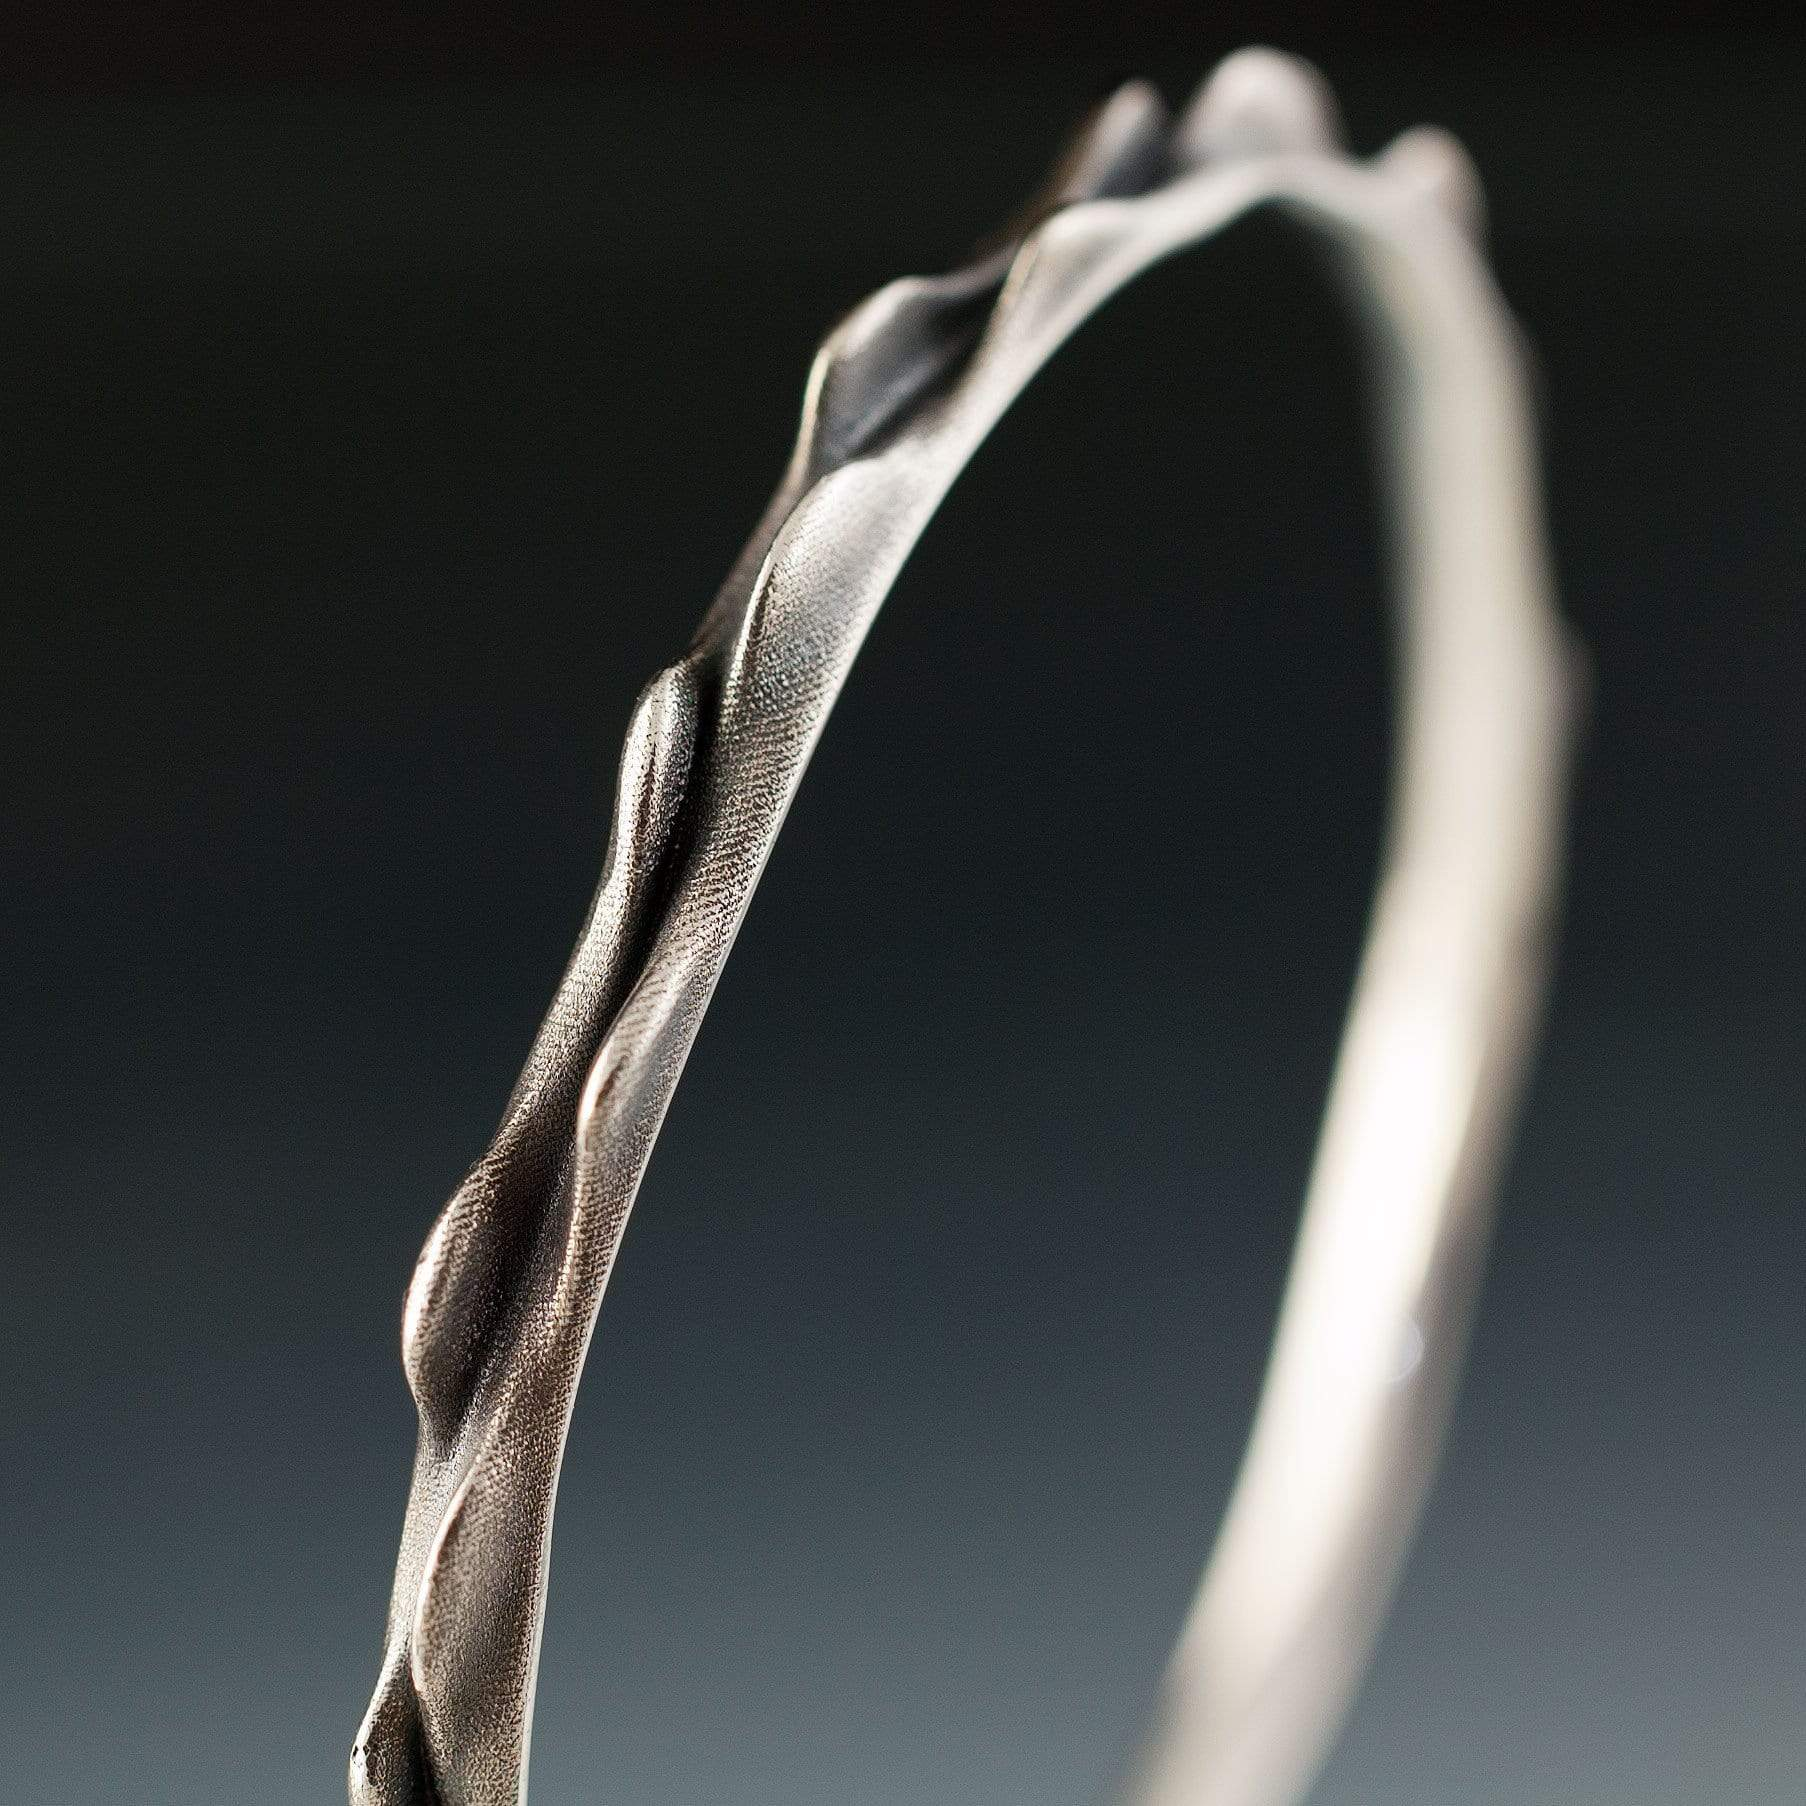 Bumpy Bracelet Bangle 3D Printed and Cast Oxidized Sterling Silver Bangle, Ready to Ship